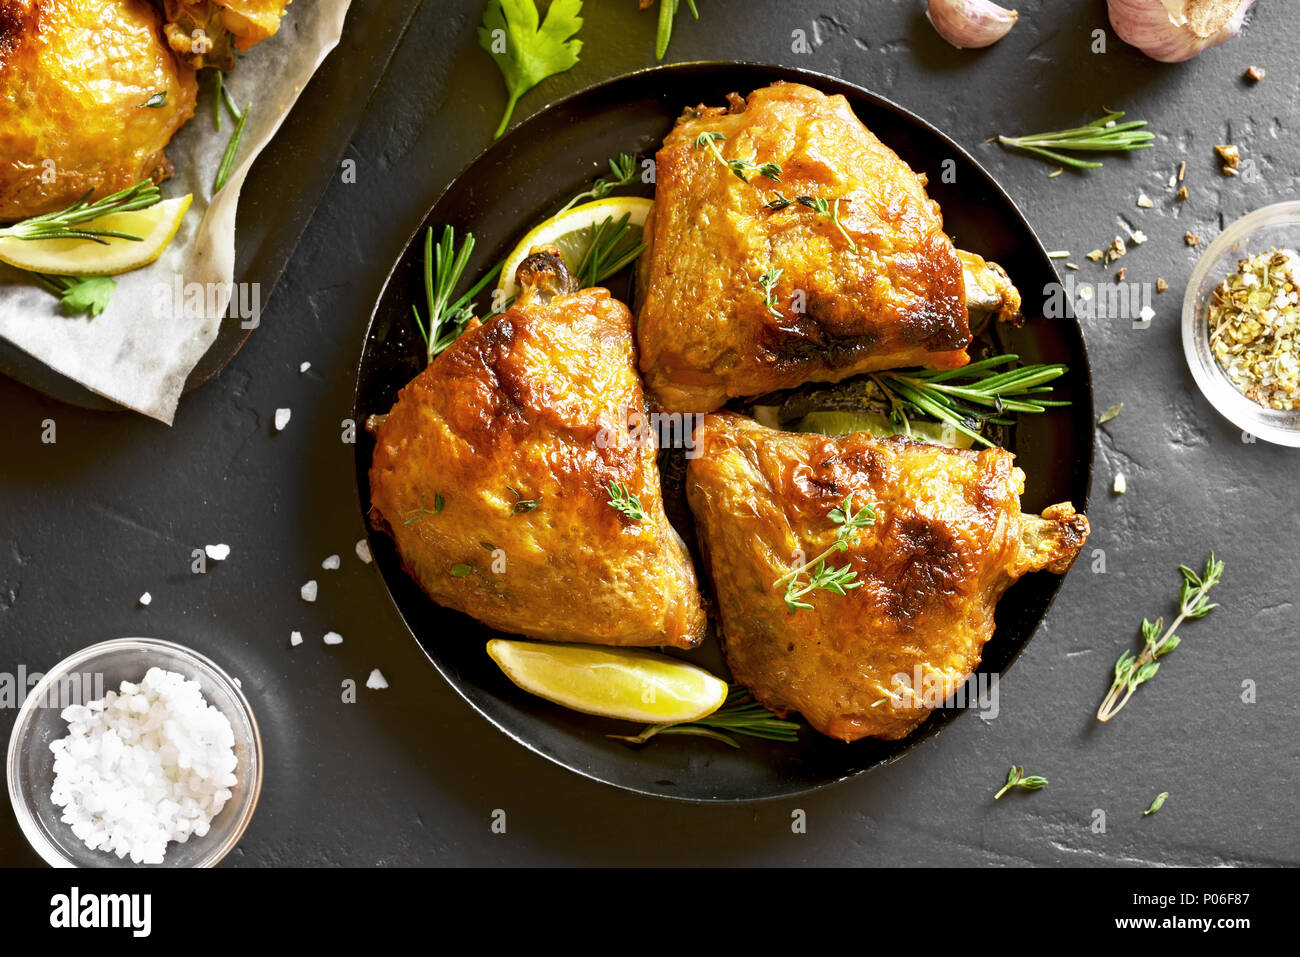 Chicken thighs on plate over black stone background. Top view, flat lay - Stock Image